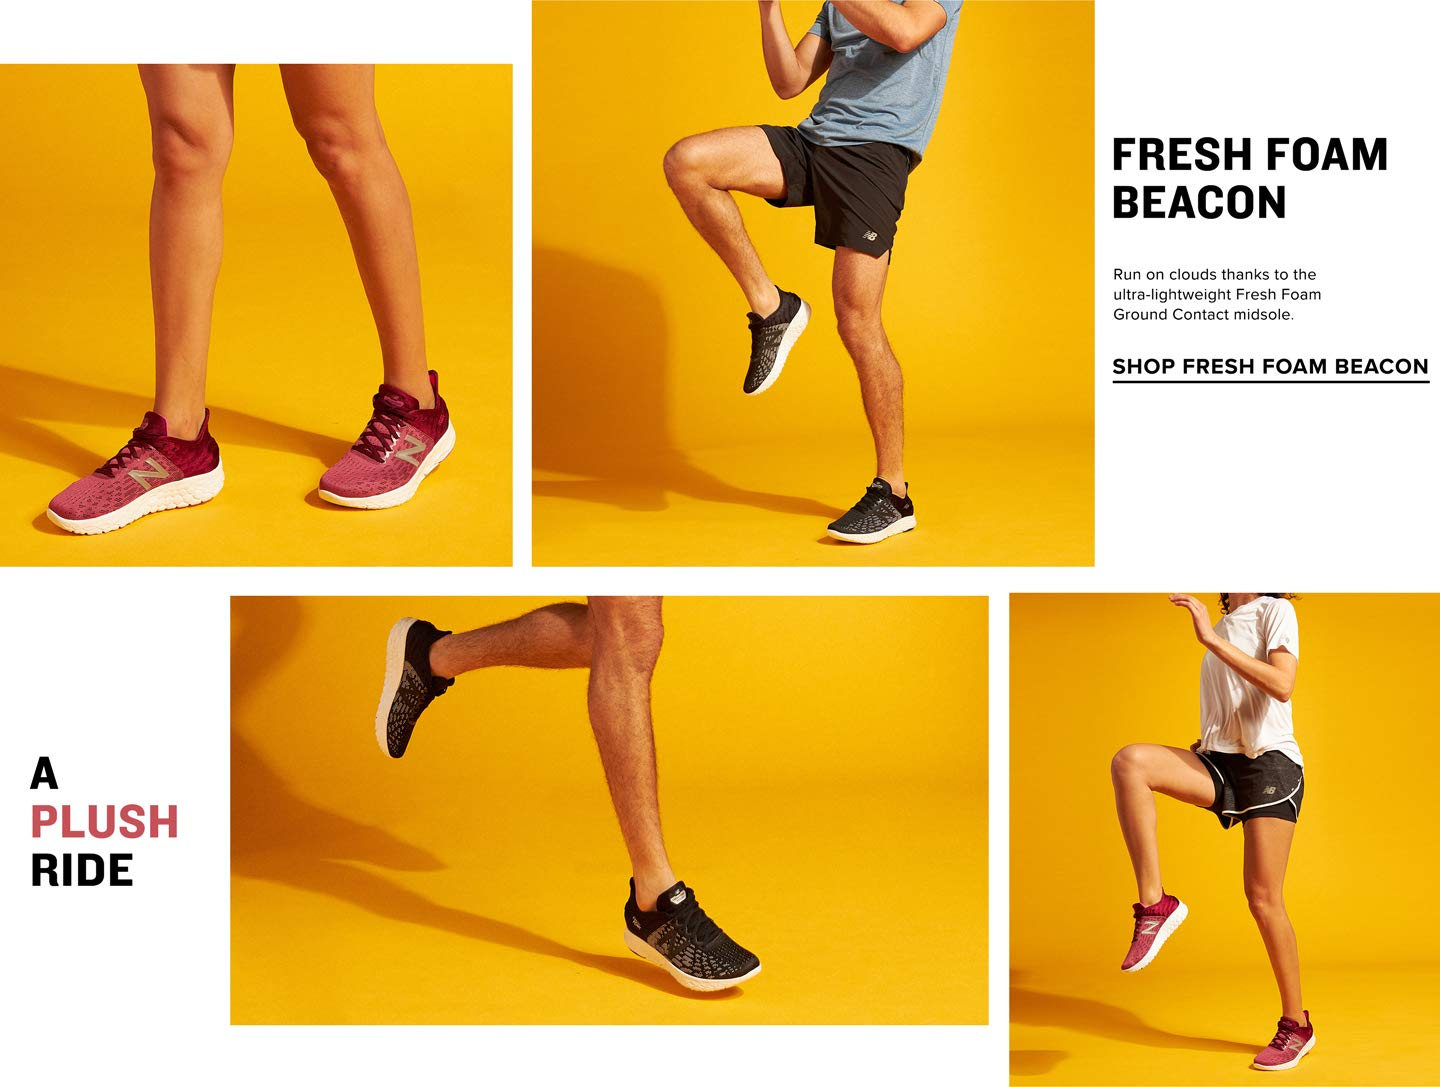 Run on clouds thanks to the ultra-lightweight Fresh Foam Ground Contact Midsole. Shop Fresh Foam Beacon.